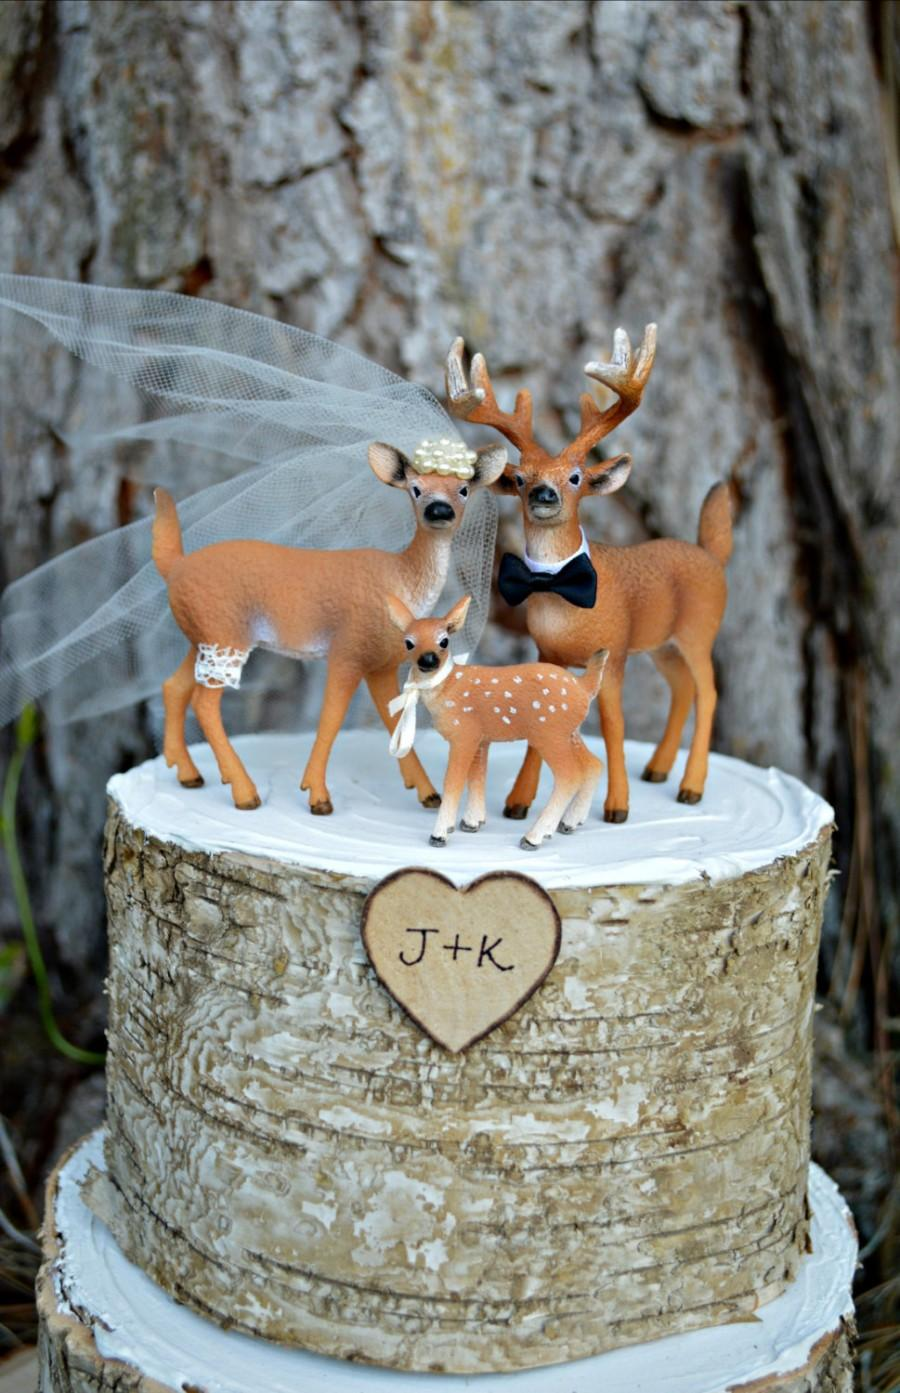 Wedding - Deer family wedding cake topper-Camouflage-buck-doe-family-Hunting wedding cake topper-Deer bride and groom-Hunting-Buck-Wedding Cake Topper